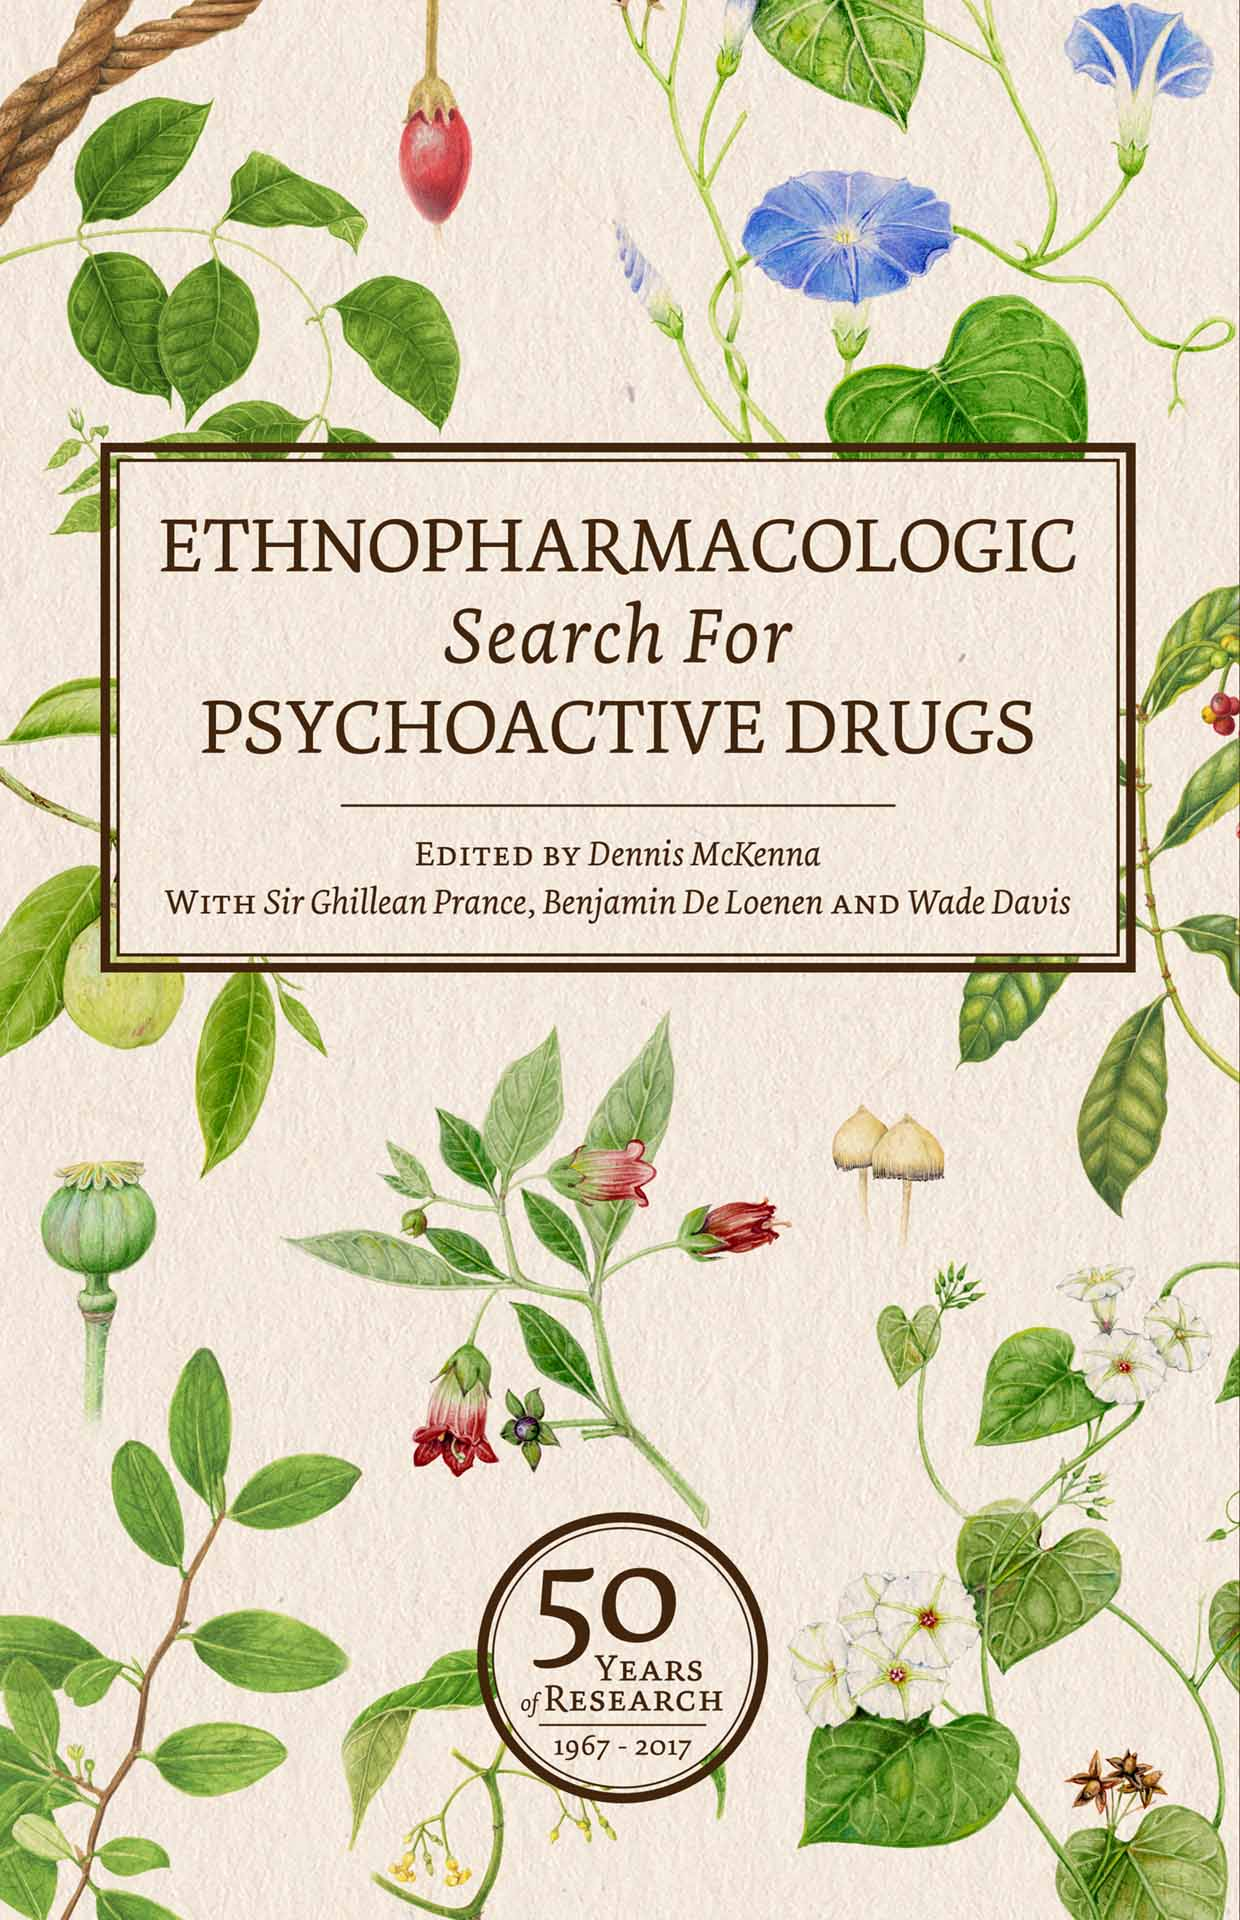 Ethnopharmacologic Search for Psychoactive Drugs: 50 Years of Research (1967-2017)